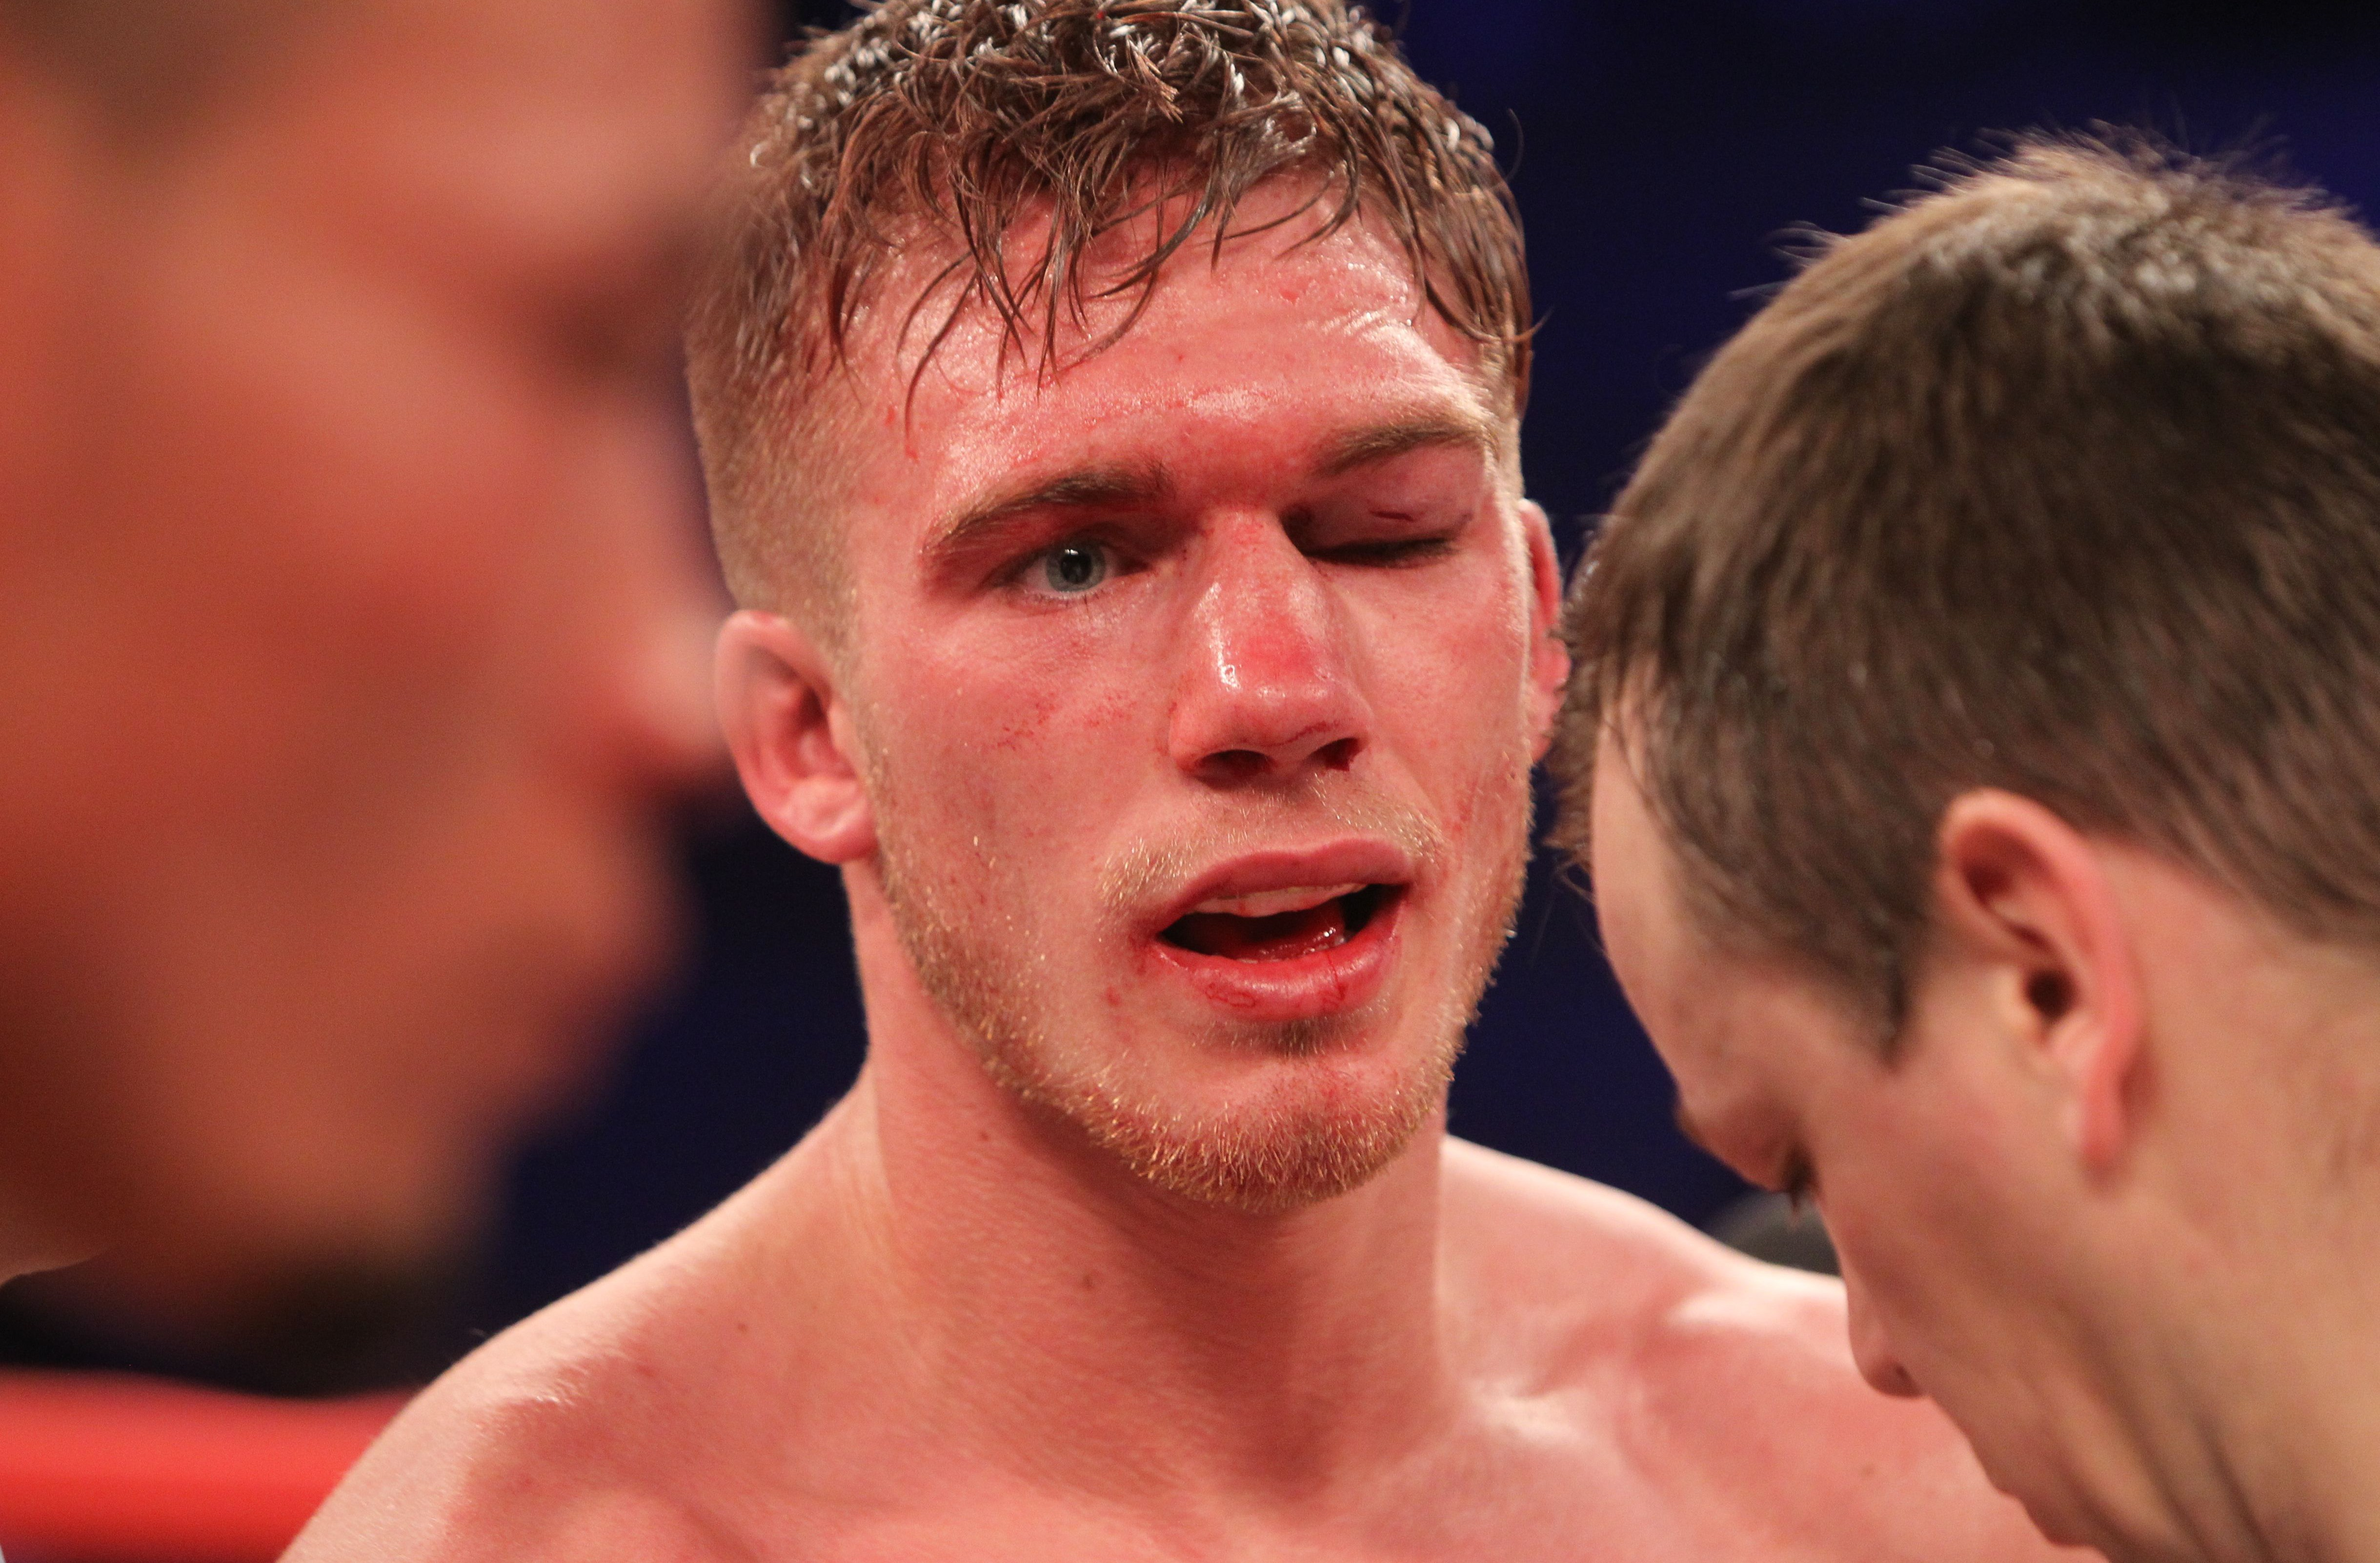 Editorial Use Only Mandatory Credit: Photo by TGSPhoto/REX/Shutterstock (5619257bp) Nick Blackwell vs Chris Eubank Jr at Wembley Arena on 26th March 2016 Hennessy Boxing show, Wembley Arena, London, Britain - 26 Mar 2016